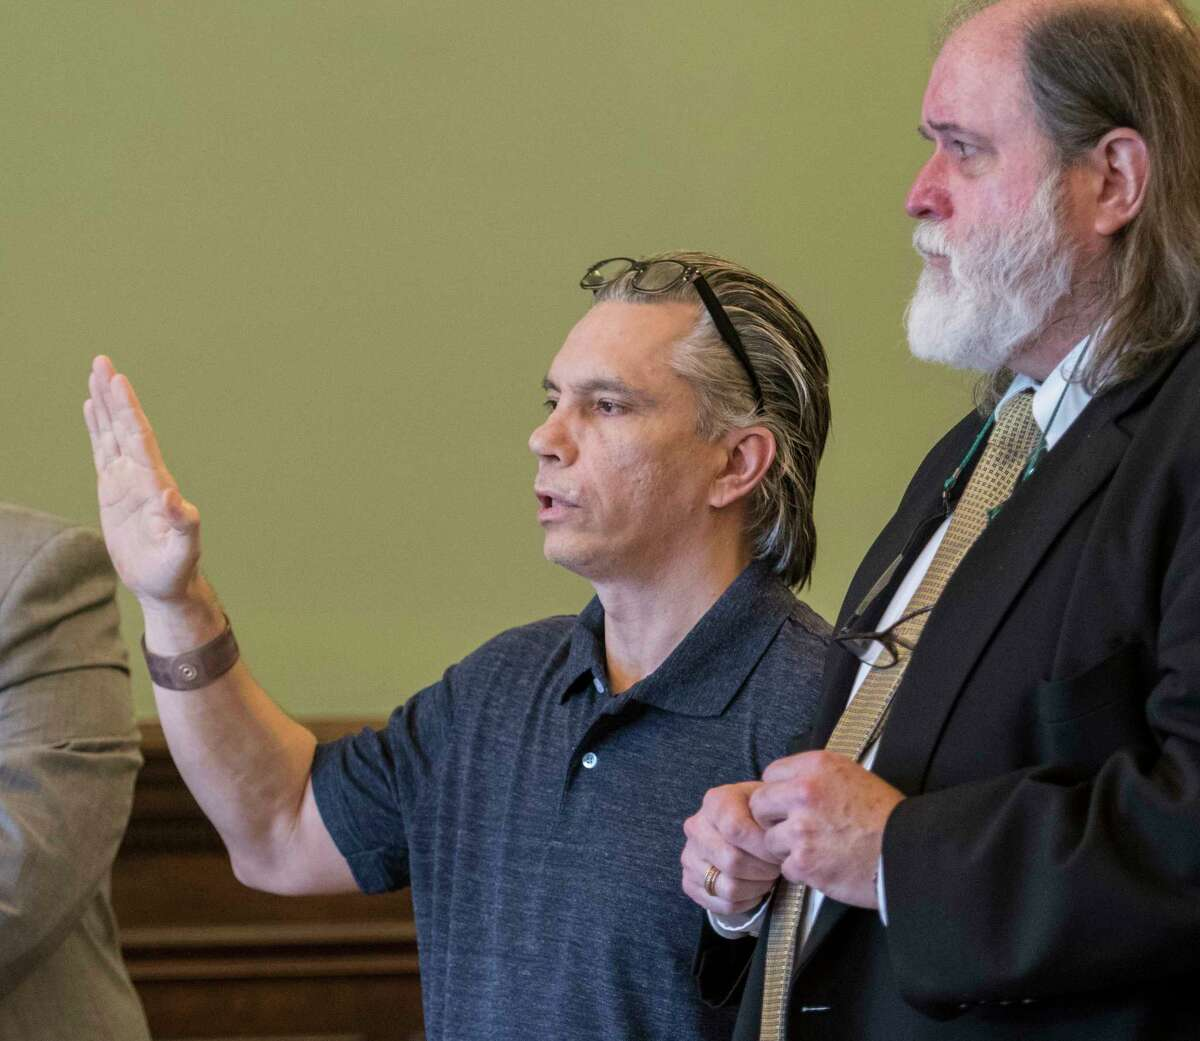 Defendant Richard J. Wright is sworn in during his retrial on his previous conviction for murder and arson which he has spent 32 years in jail Monday July 9, 2018 at the Rensselaer County Courthouse in Troy, N.Y. (Skip Dickstein/Times Union)